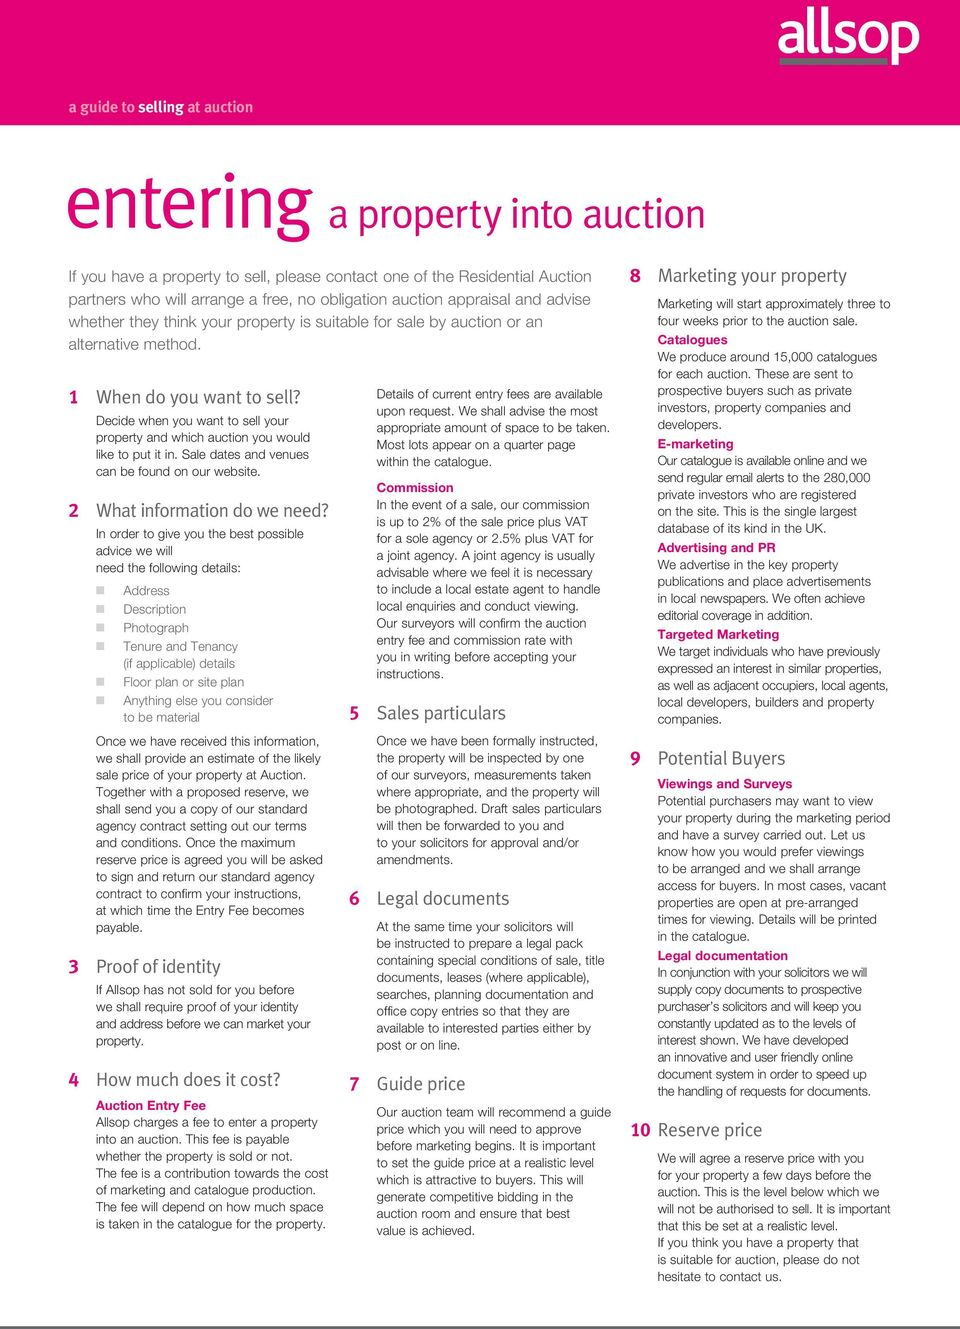 Decide whe you wat to sell your property ad which auctio you would like to put it i. Sale dates ad veues ca be foud o our website. 2 What iformatio do we eed?